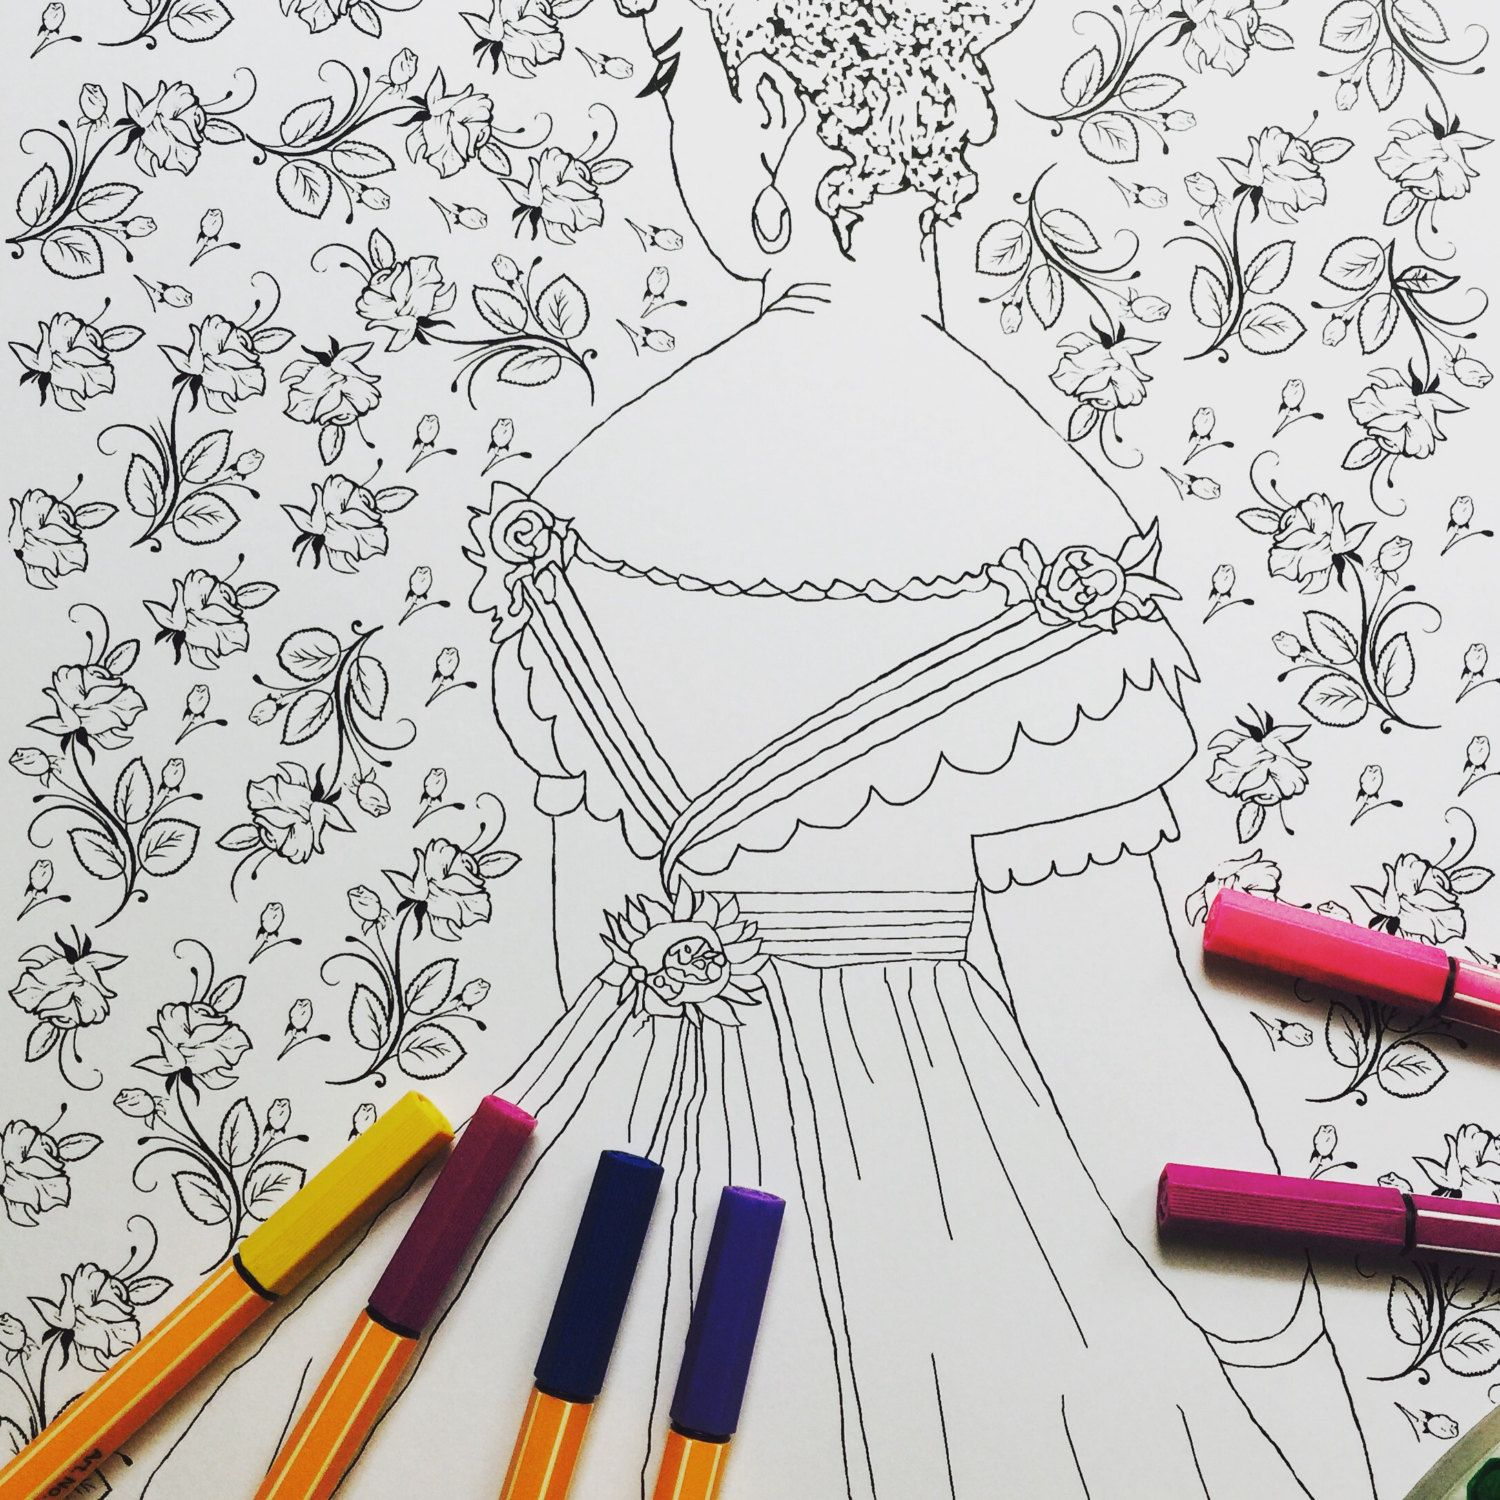 Printable coloring pages etsy - Adult Coloring Page Printable Coloring Page Victorian Lady Coloring Page By Emptyingtheattic On Etsy